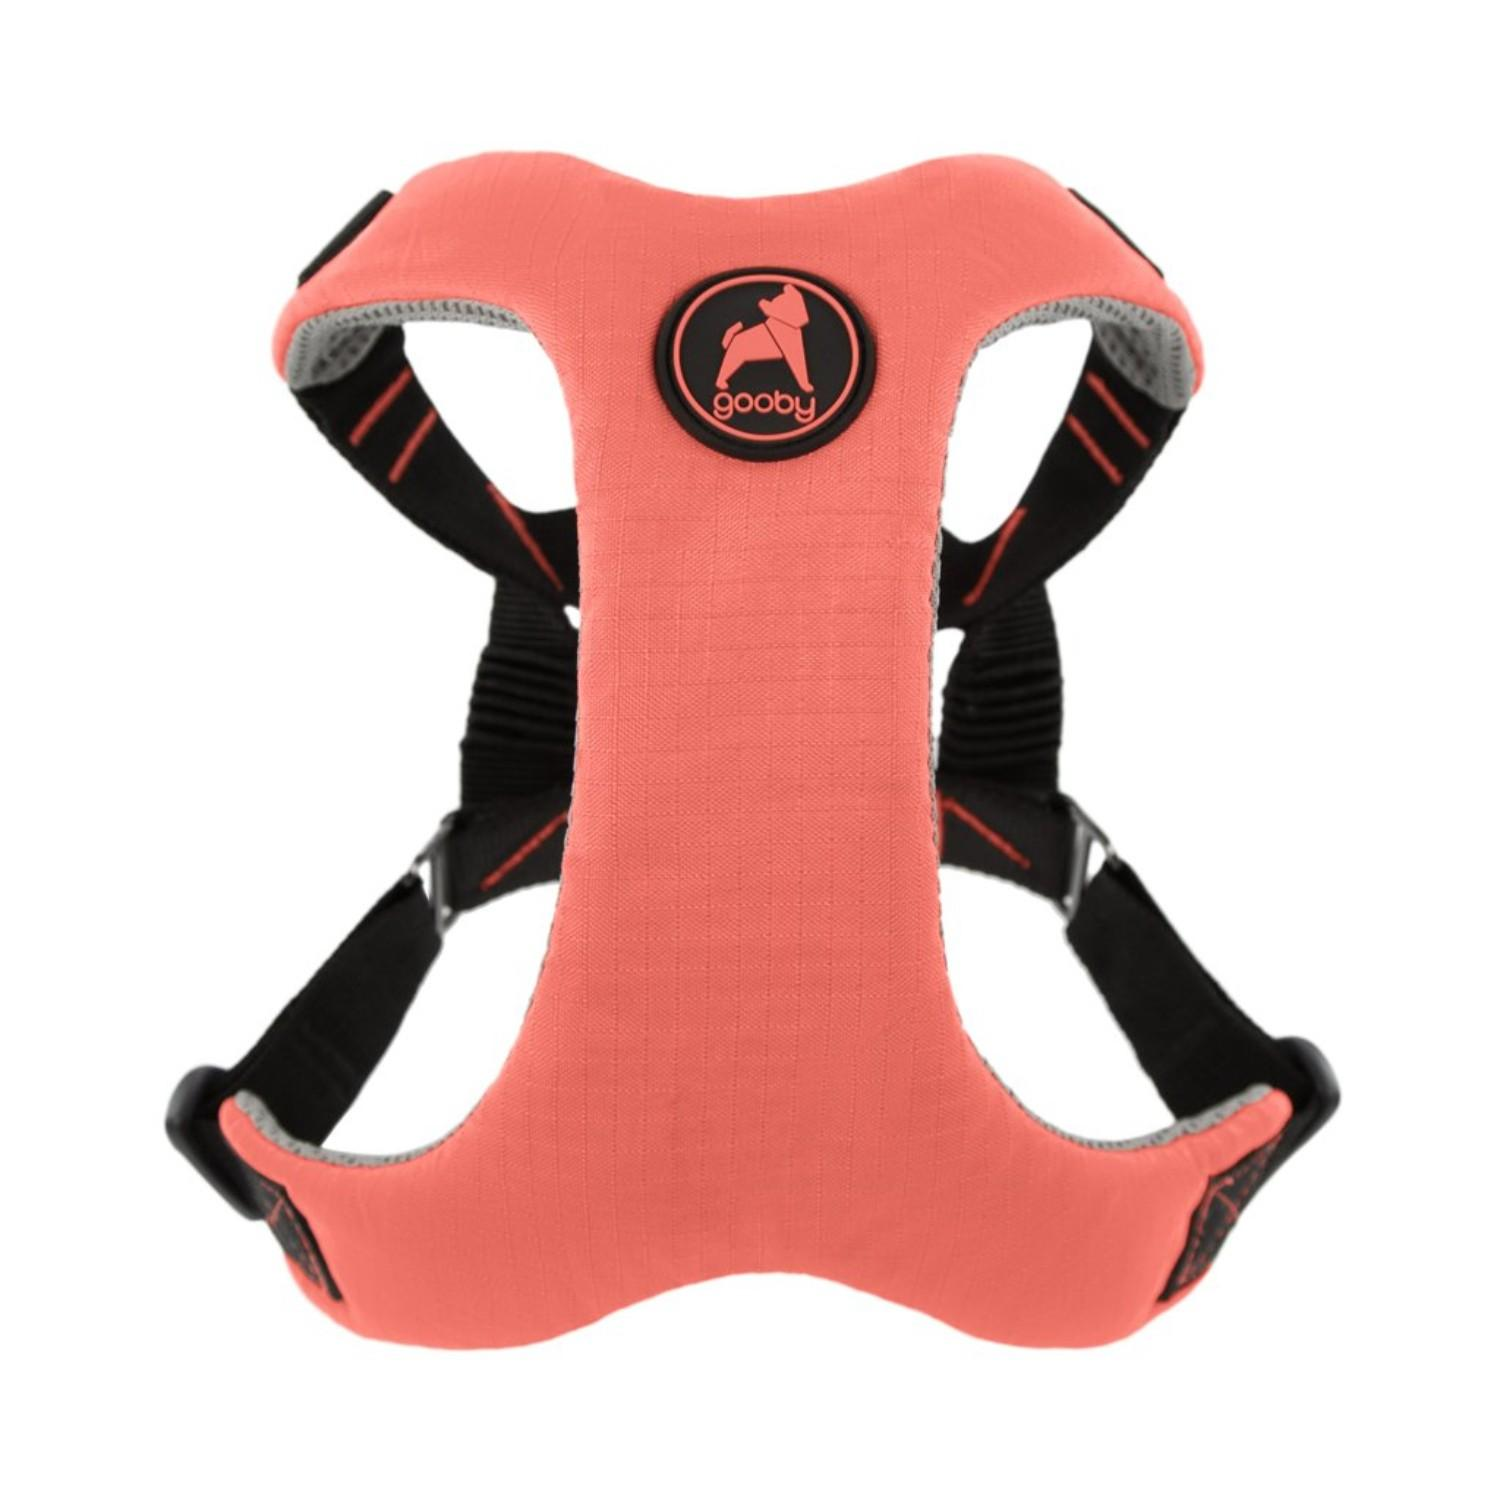 Gooby Convertible Z Dog Harness - Pink